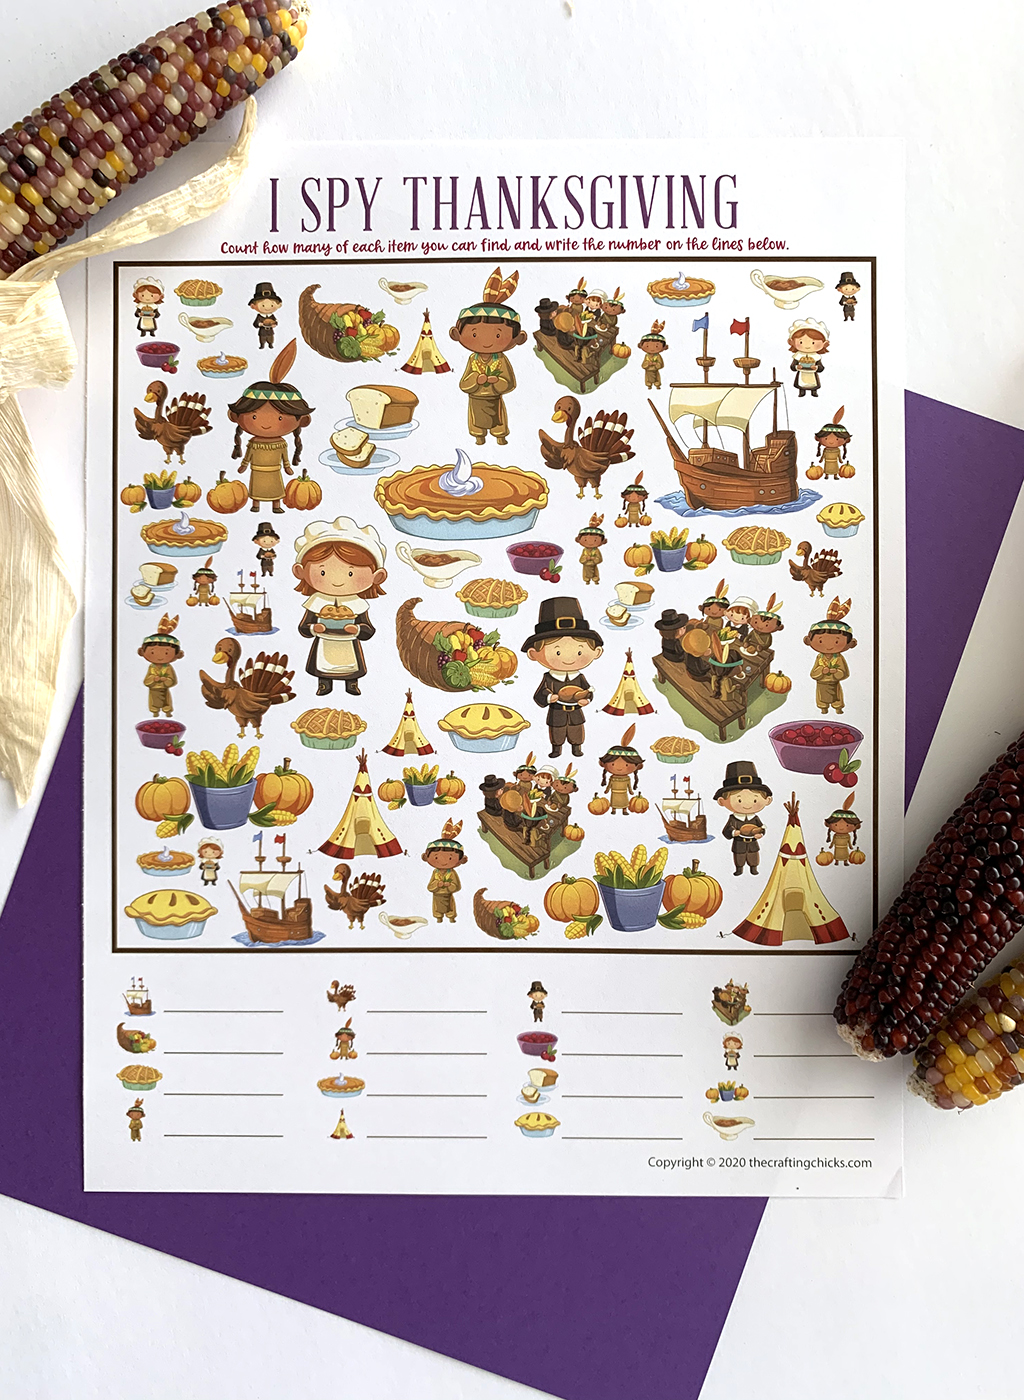 I Spy Thanksgiving Printable game on a purple paper background